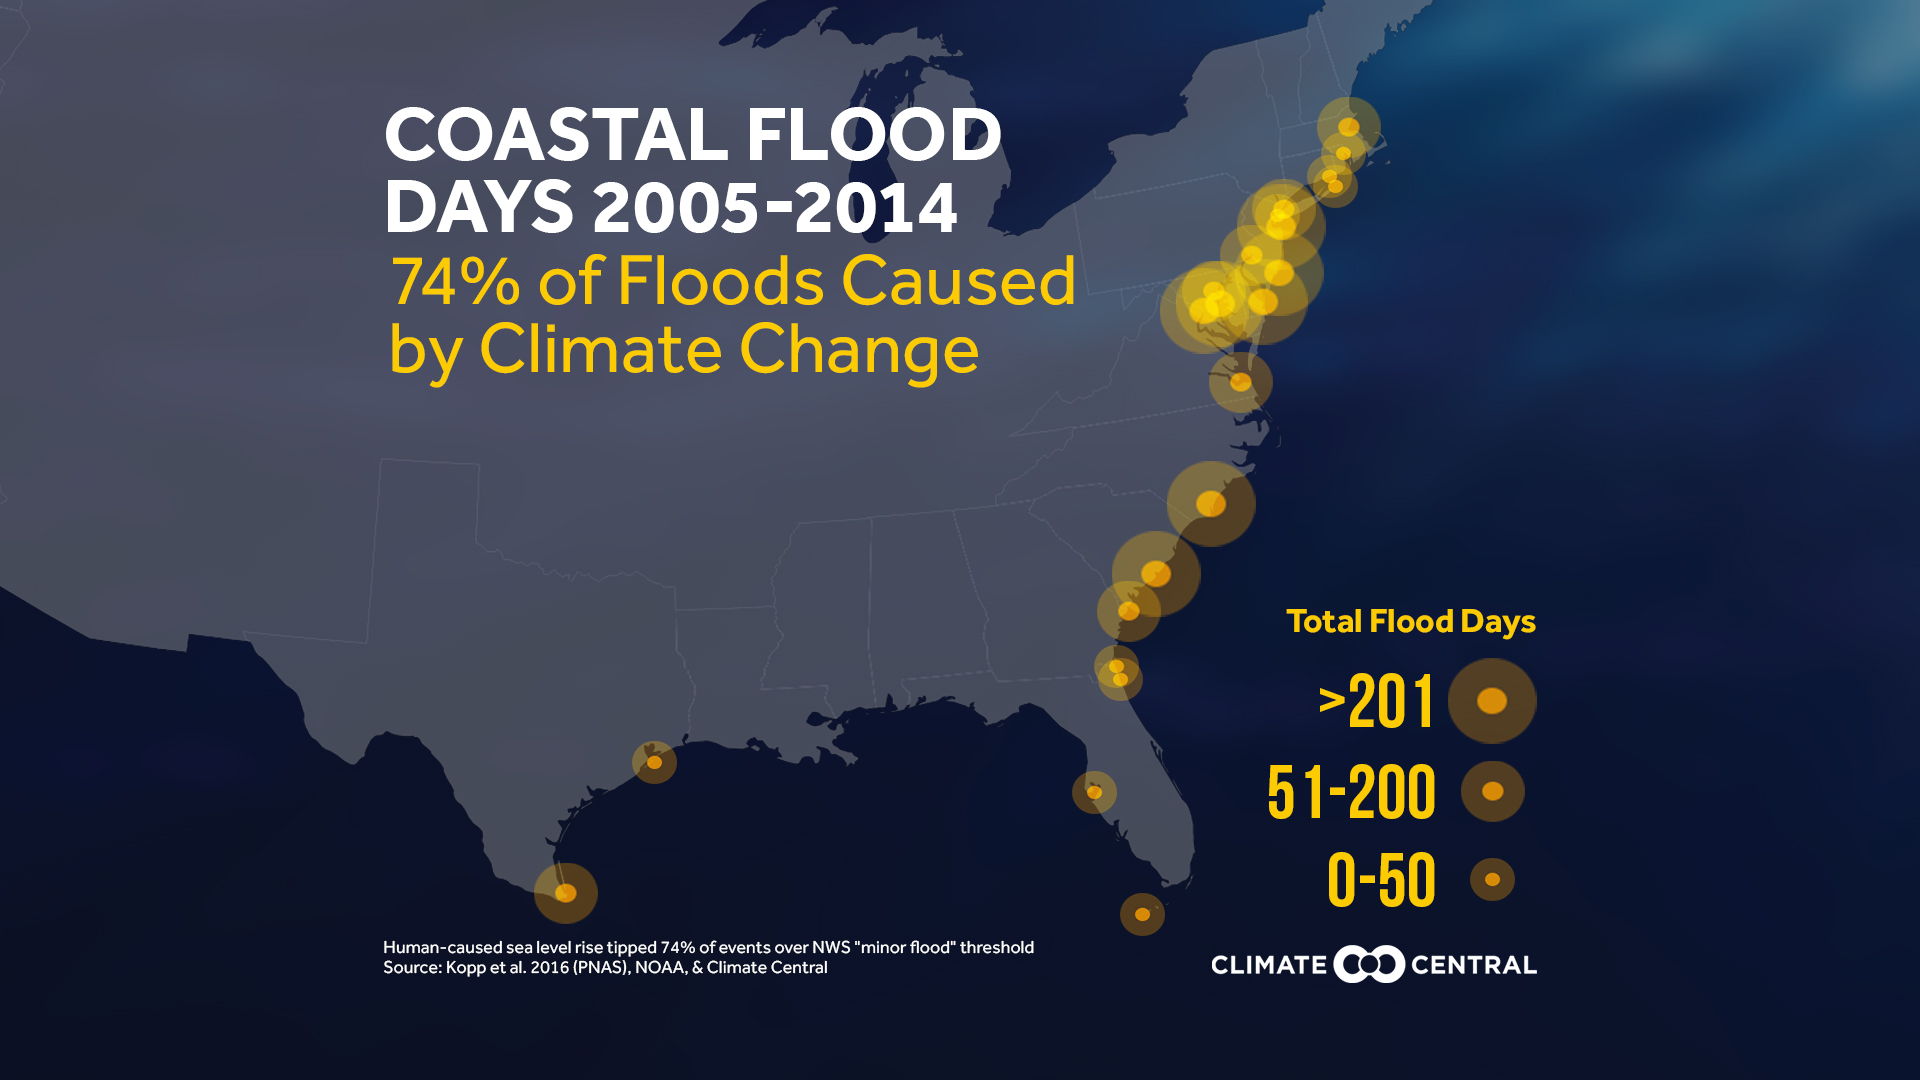 Atlantic Coastal Flood Days